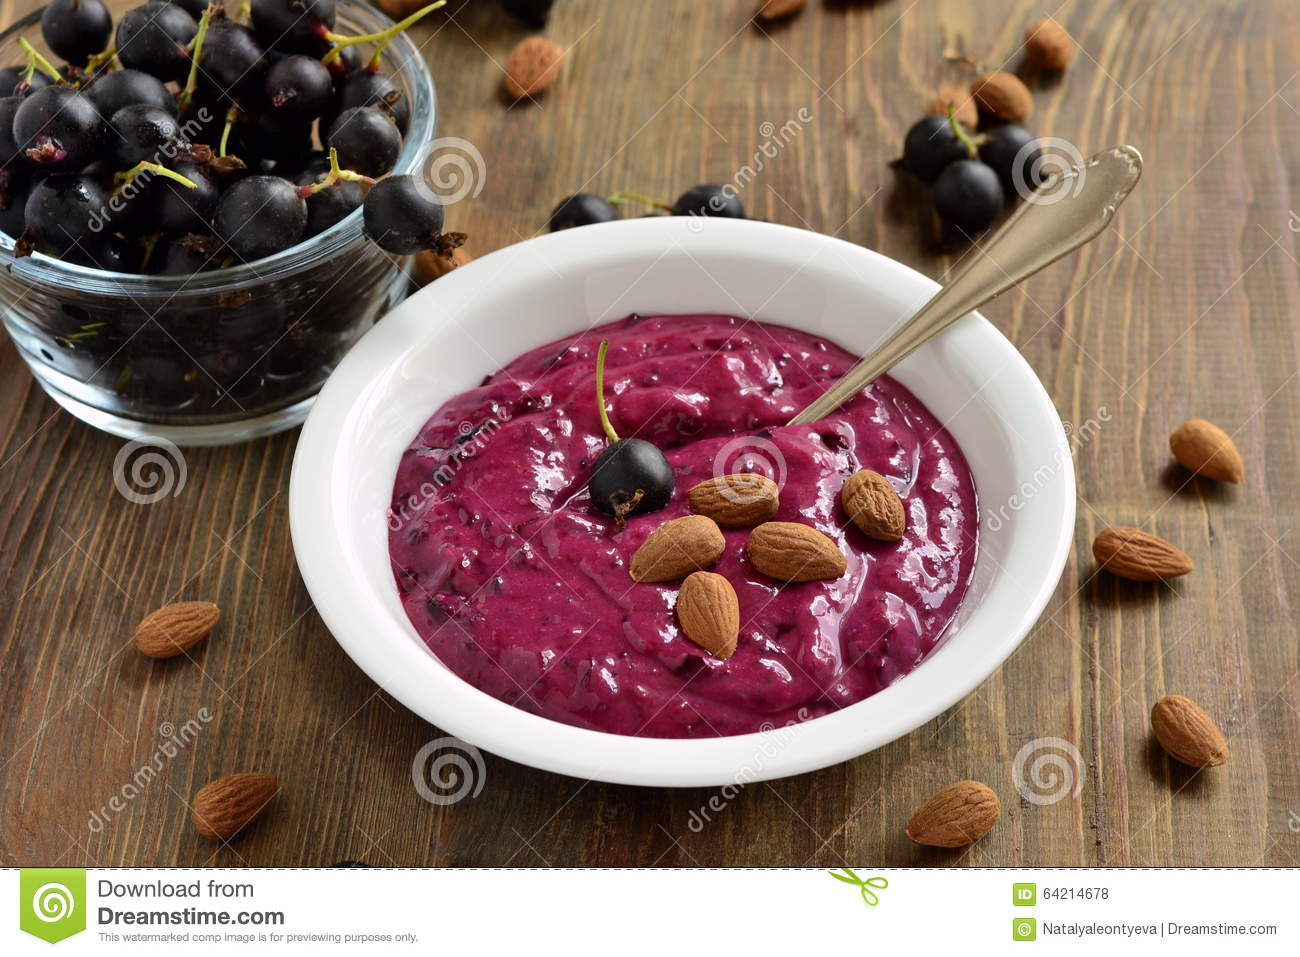 Download Tasty Black Currant Smoothie With Almonds And Berries Stock Photo Image Of Fresh